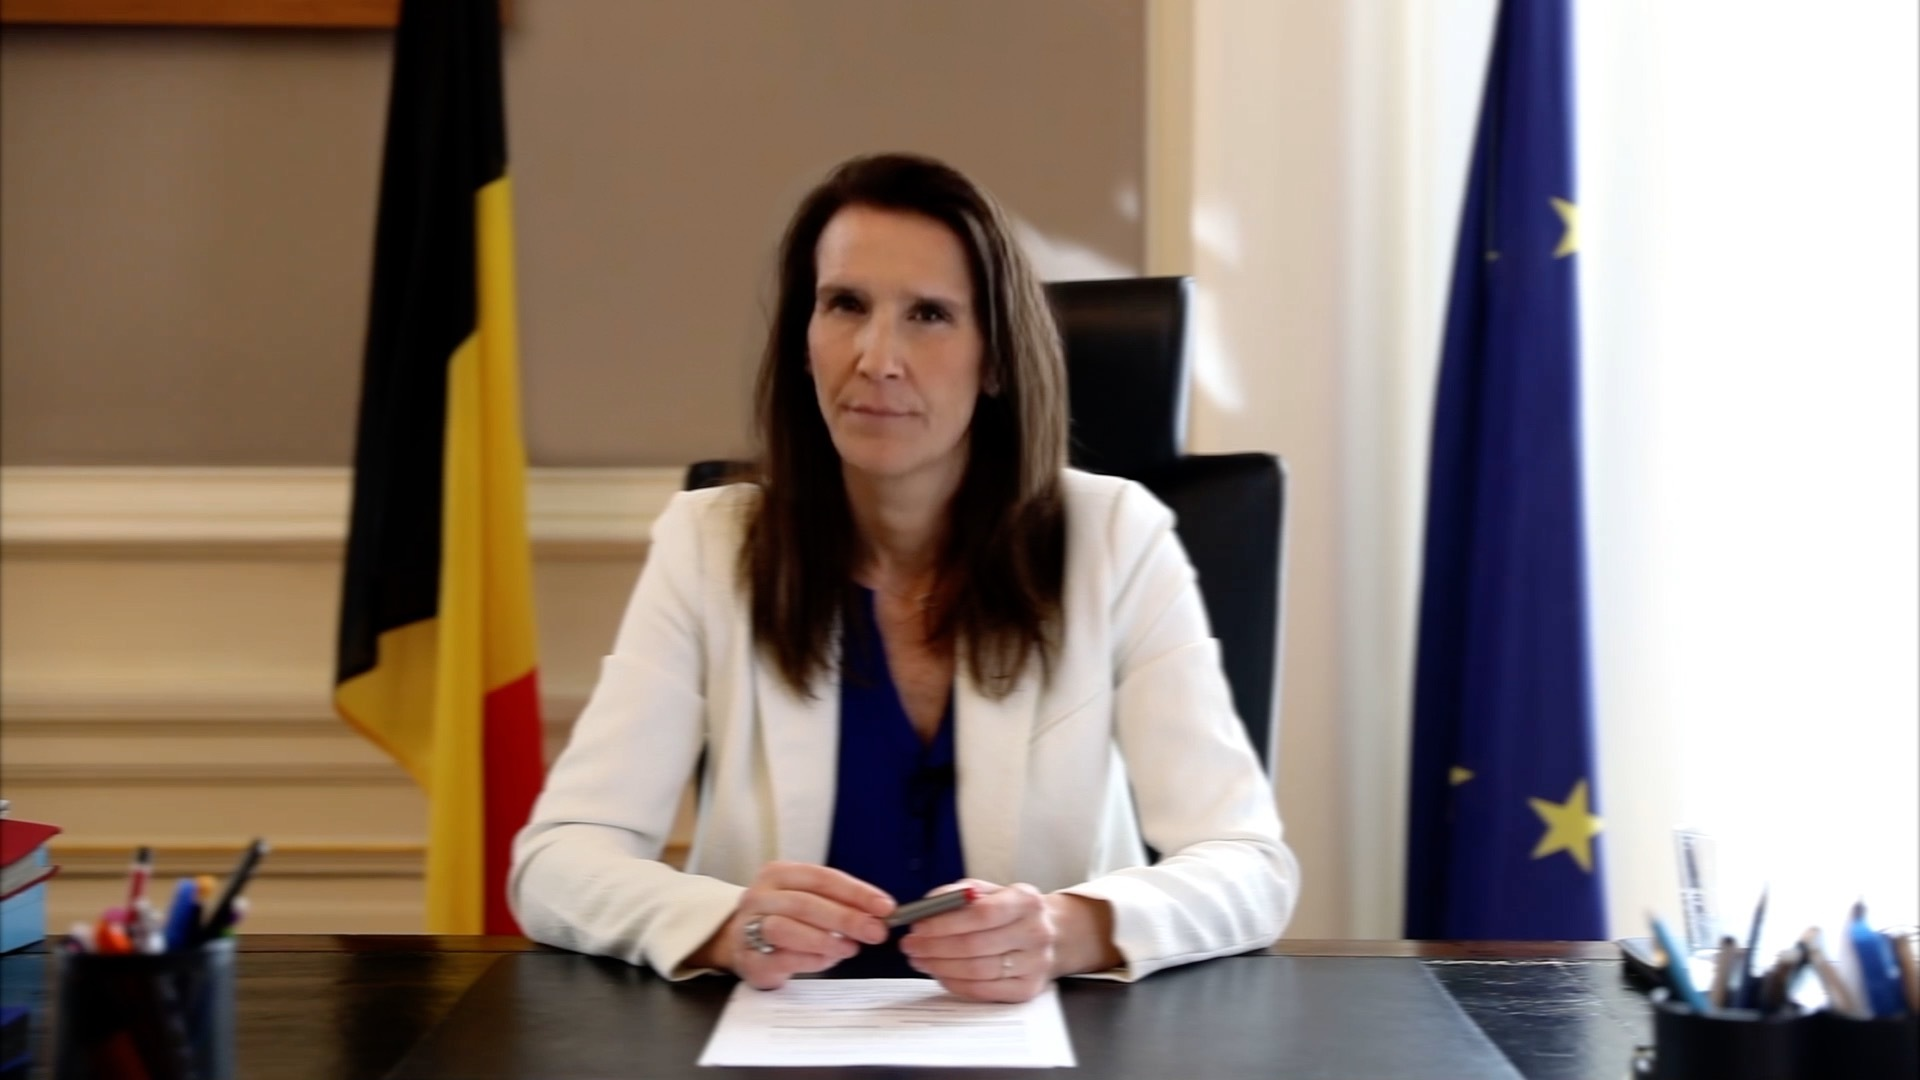 A video still from XR Belgium's speech for Sophie Wilmès